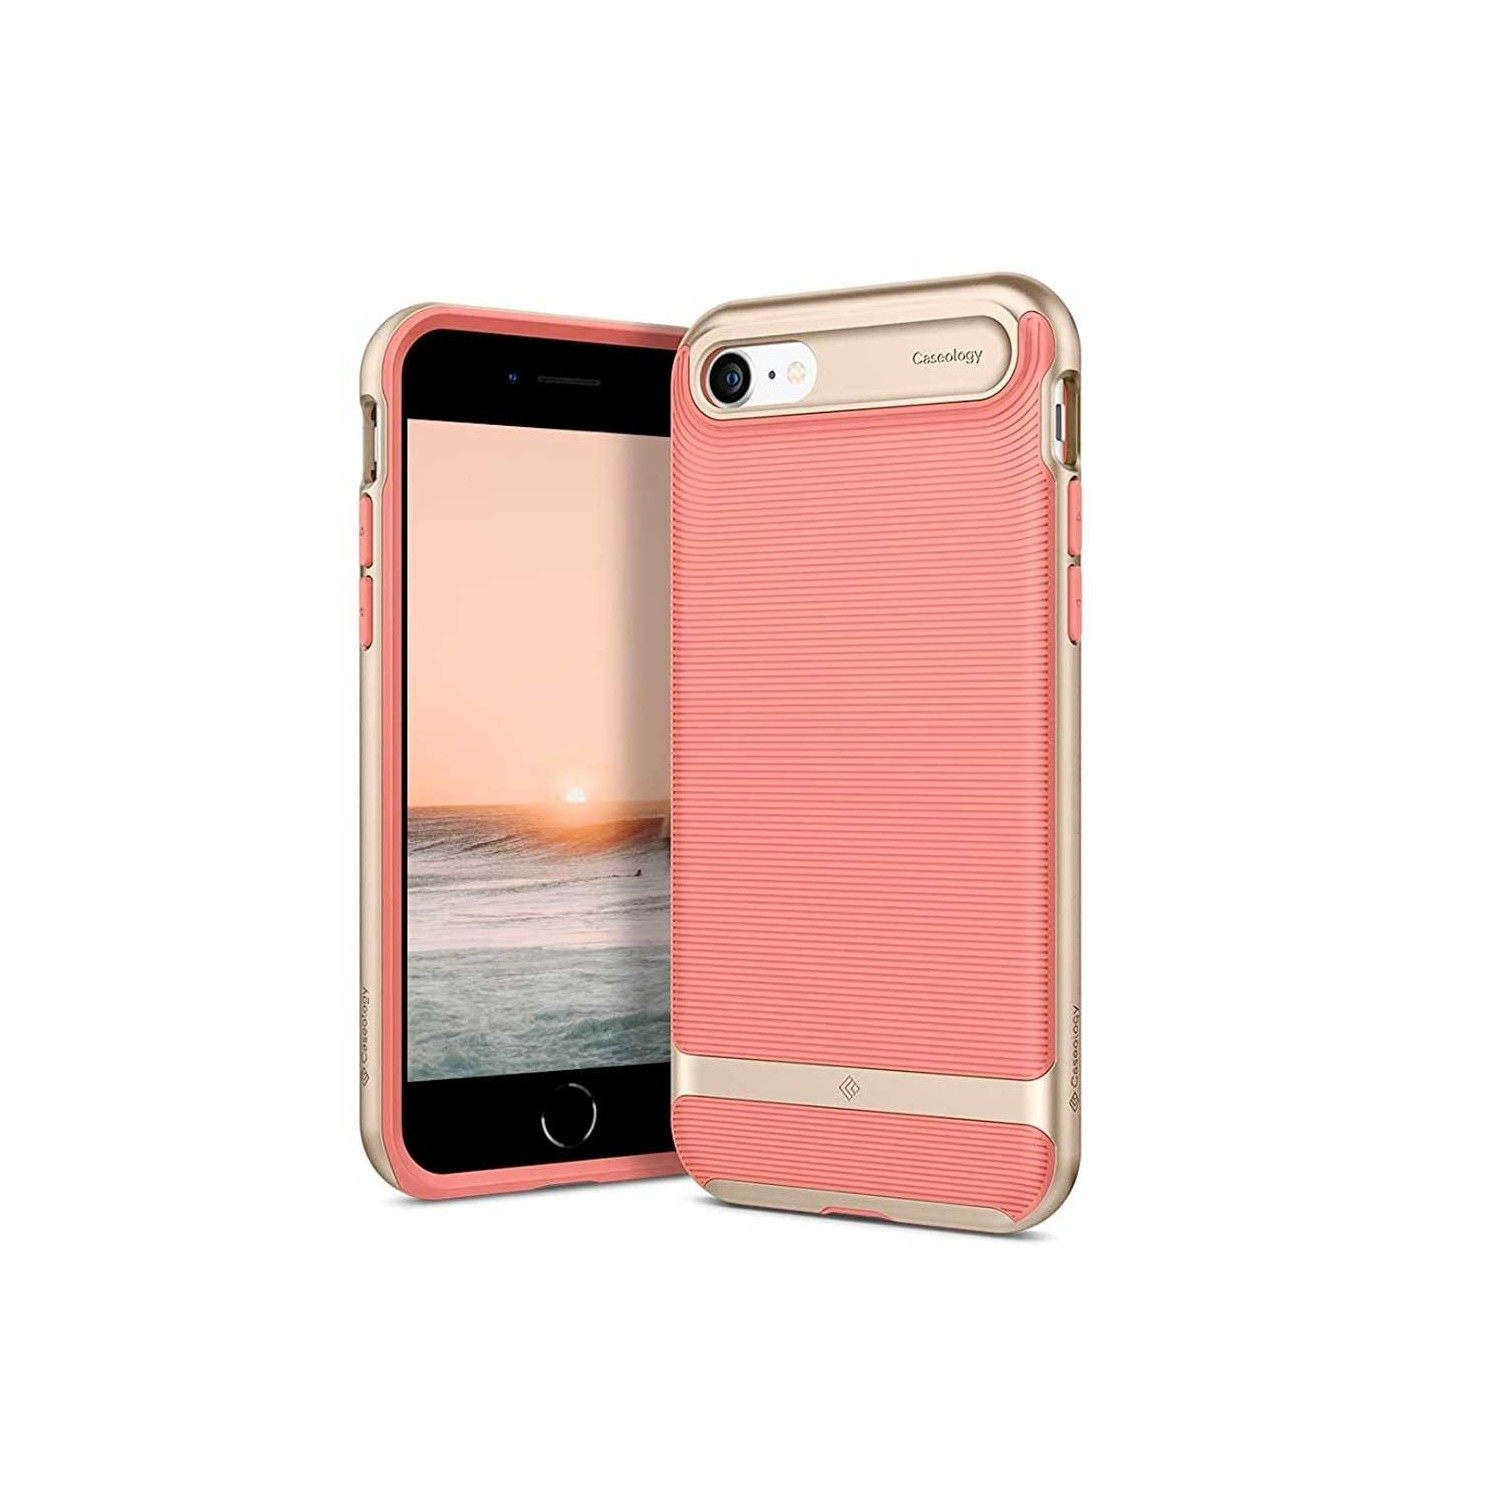 Case - CASEOLOGY iPhone 7 - Wavelength - Coral Pink